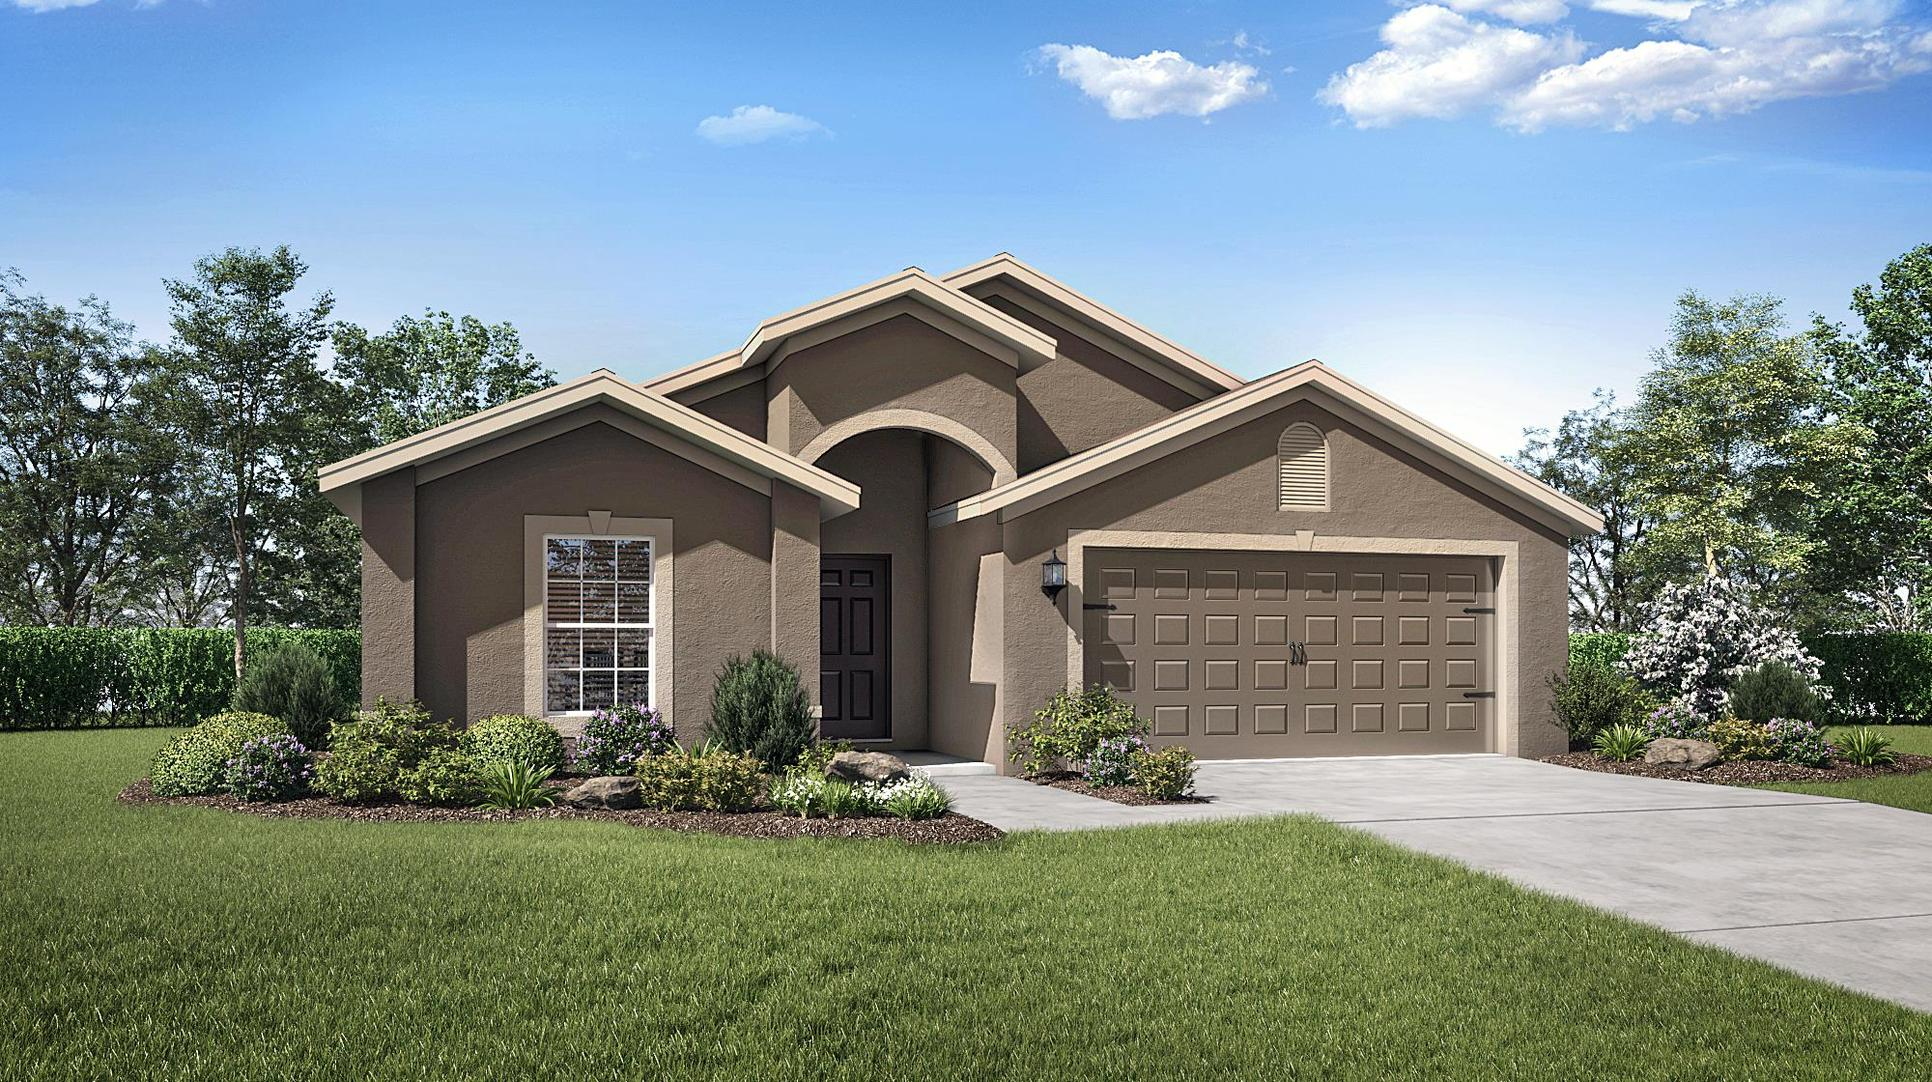 The Estero by LGI Homes:The Estero at Kensington View features lush front yard landscaping and plenty of entertainment space